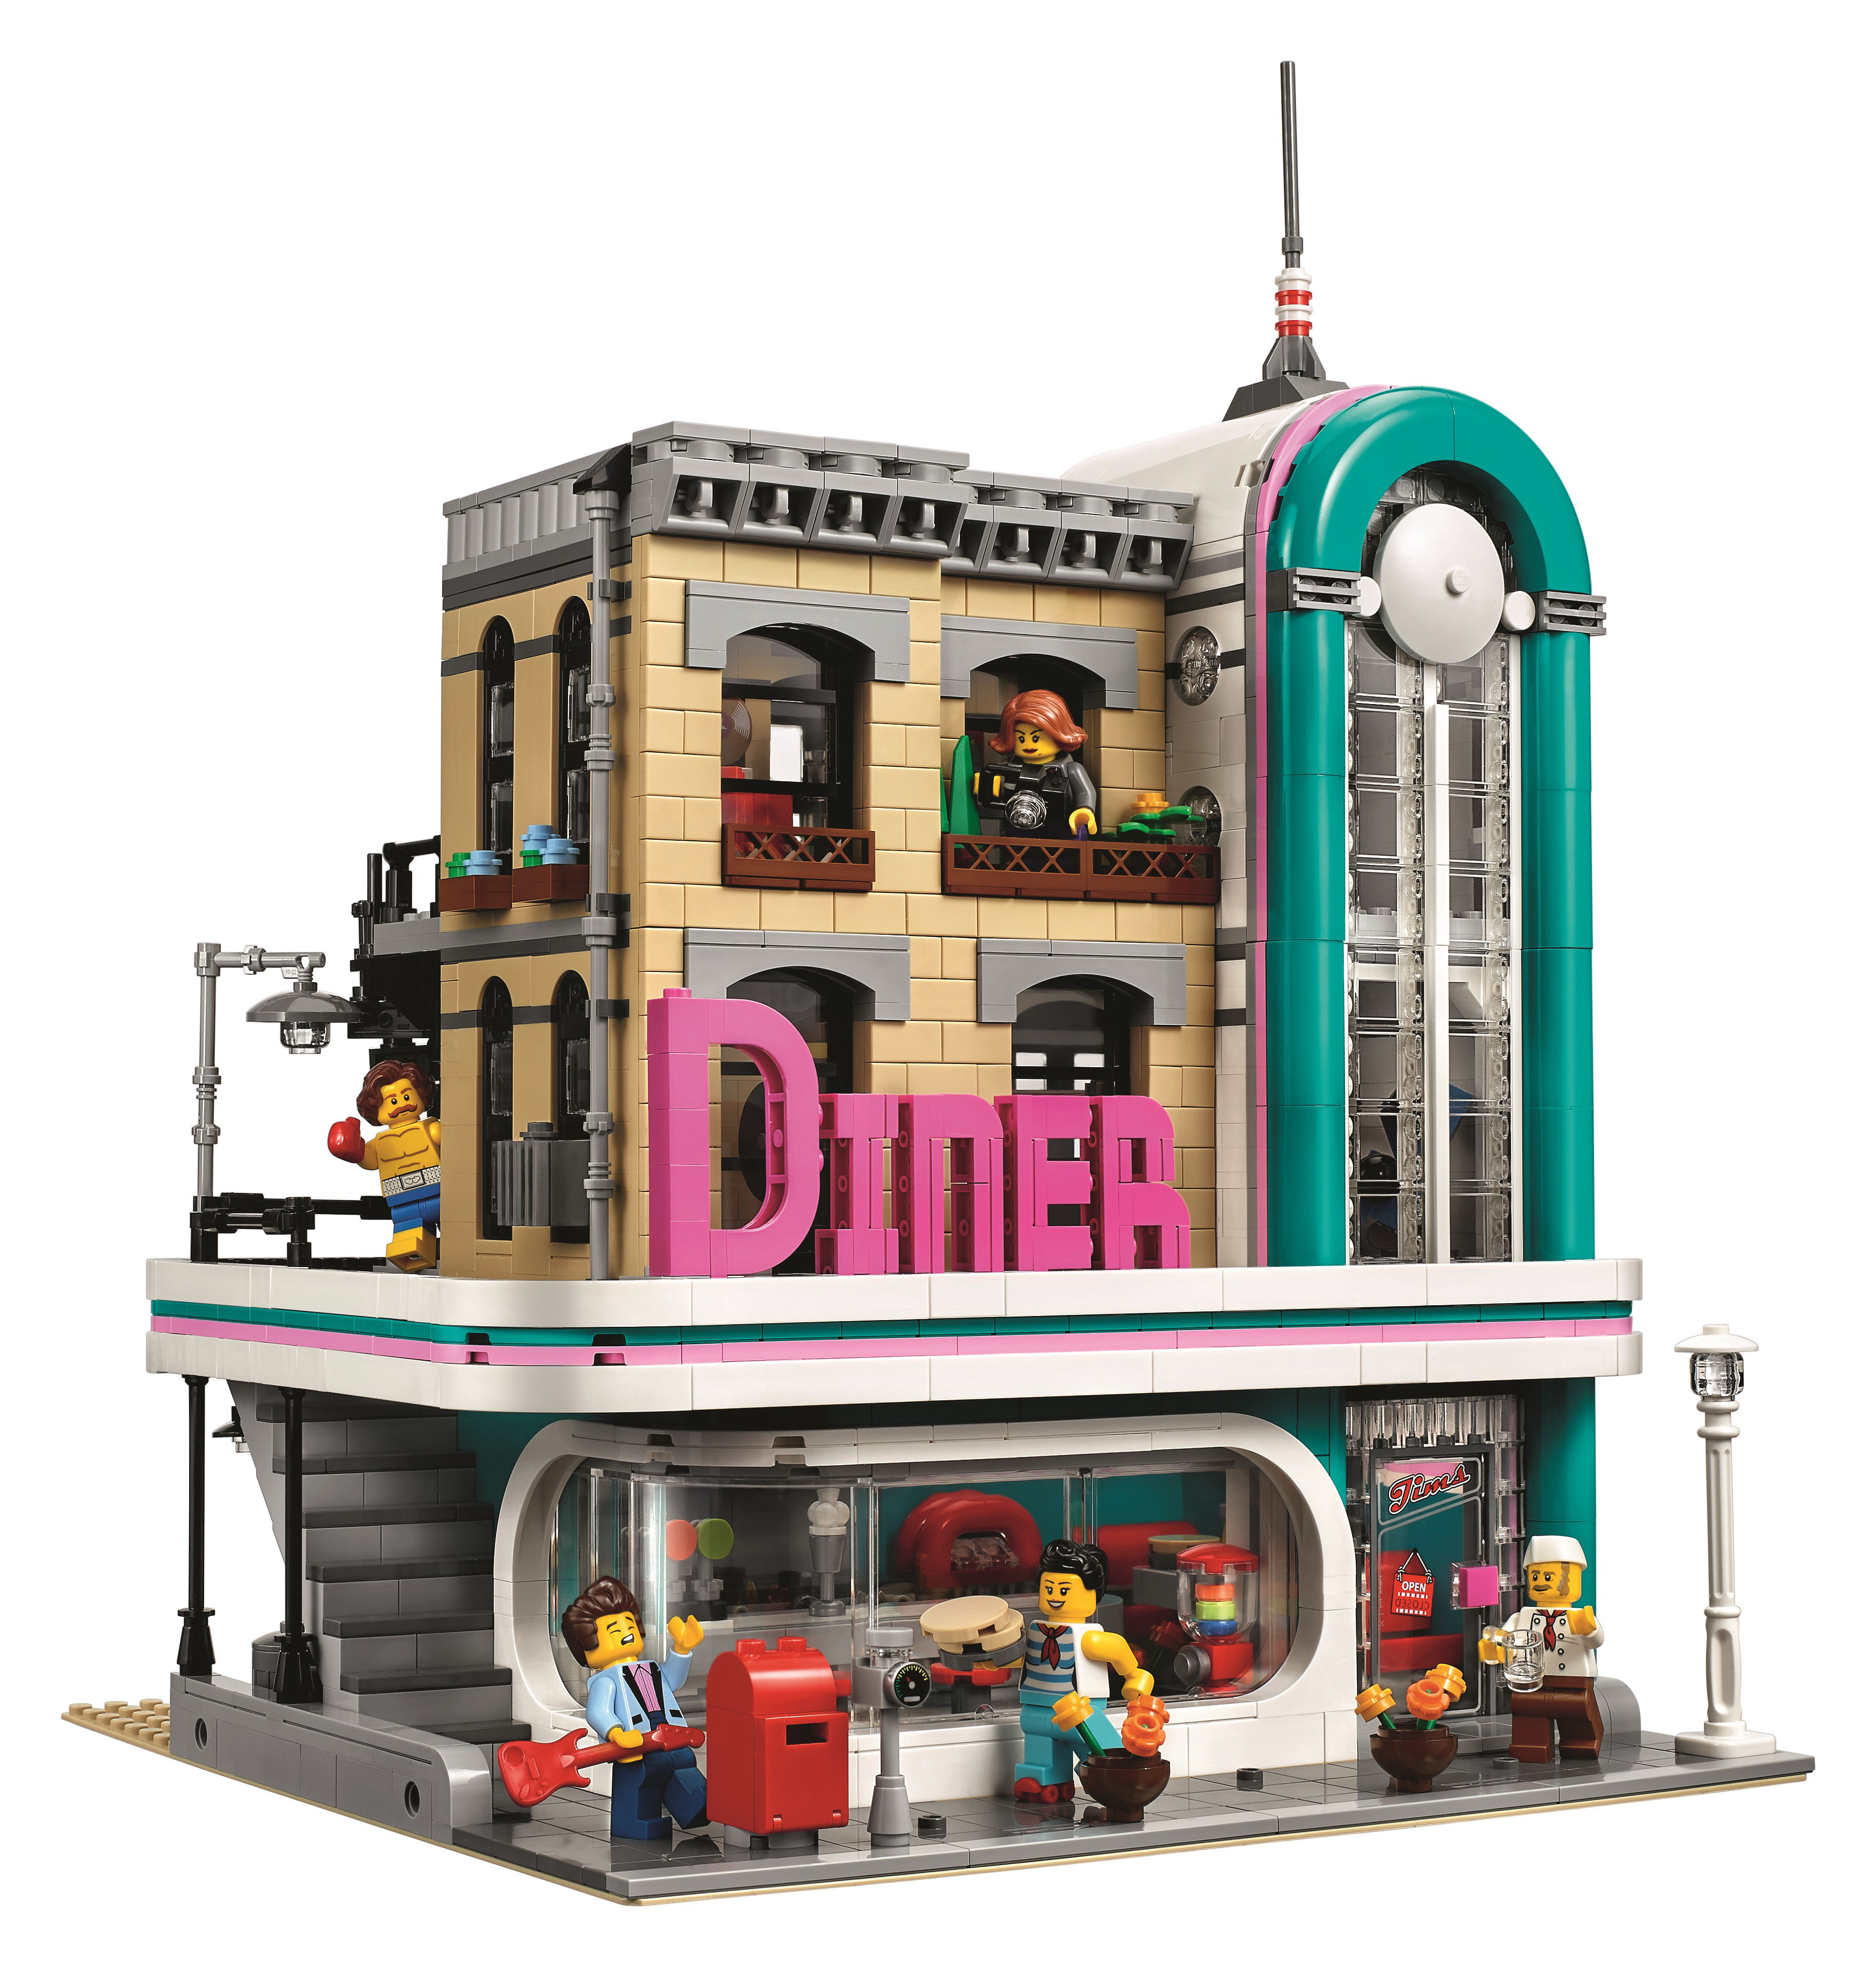 With The Lego Creator Expert Modular Building Series 10243 Parisian Restaurant 10246 Detectives Office 10251 Brick Bank And 10255 Assembly Square